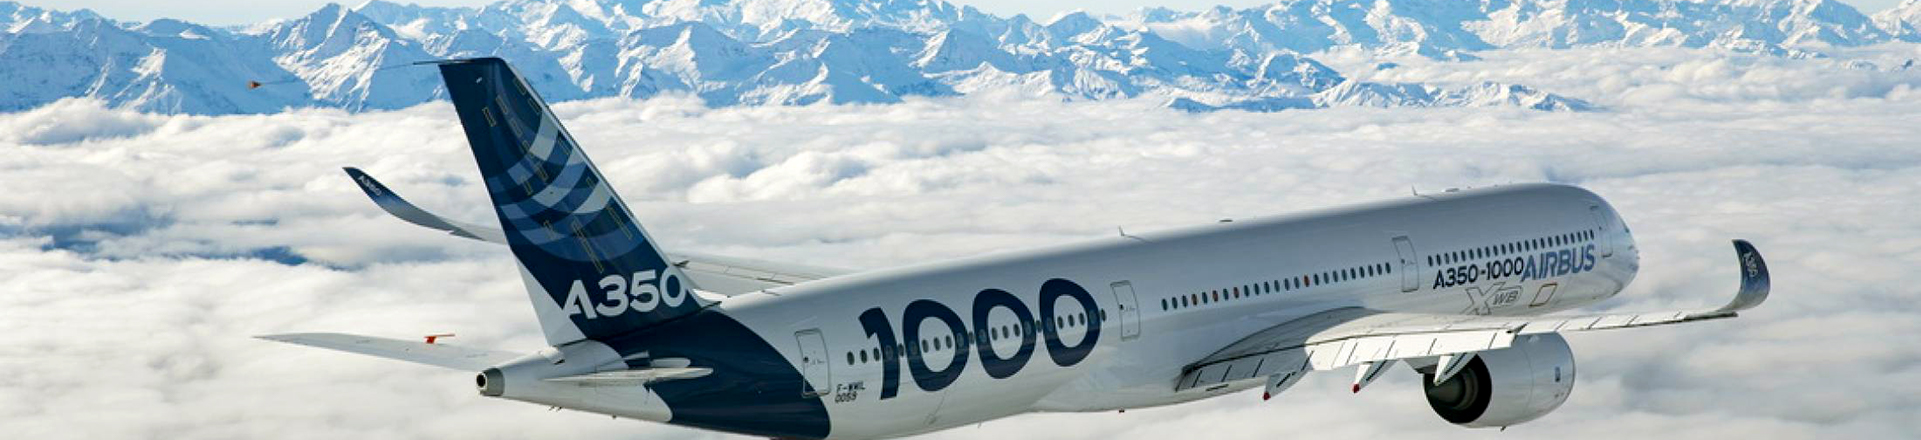 wp-band-image-airbus-a350-in-flight-1920×440-080318